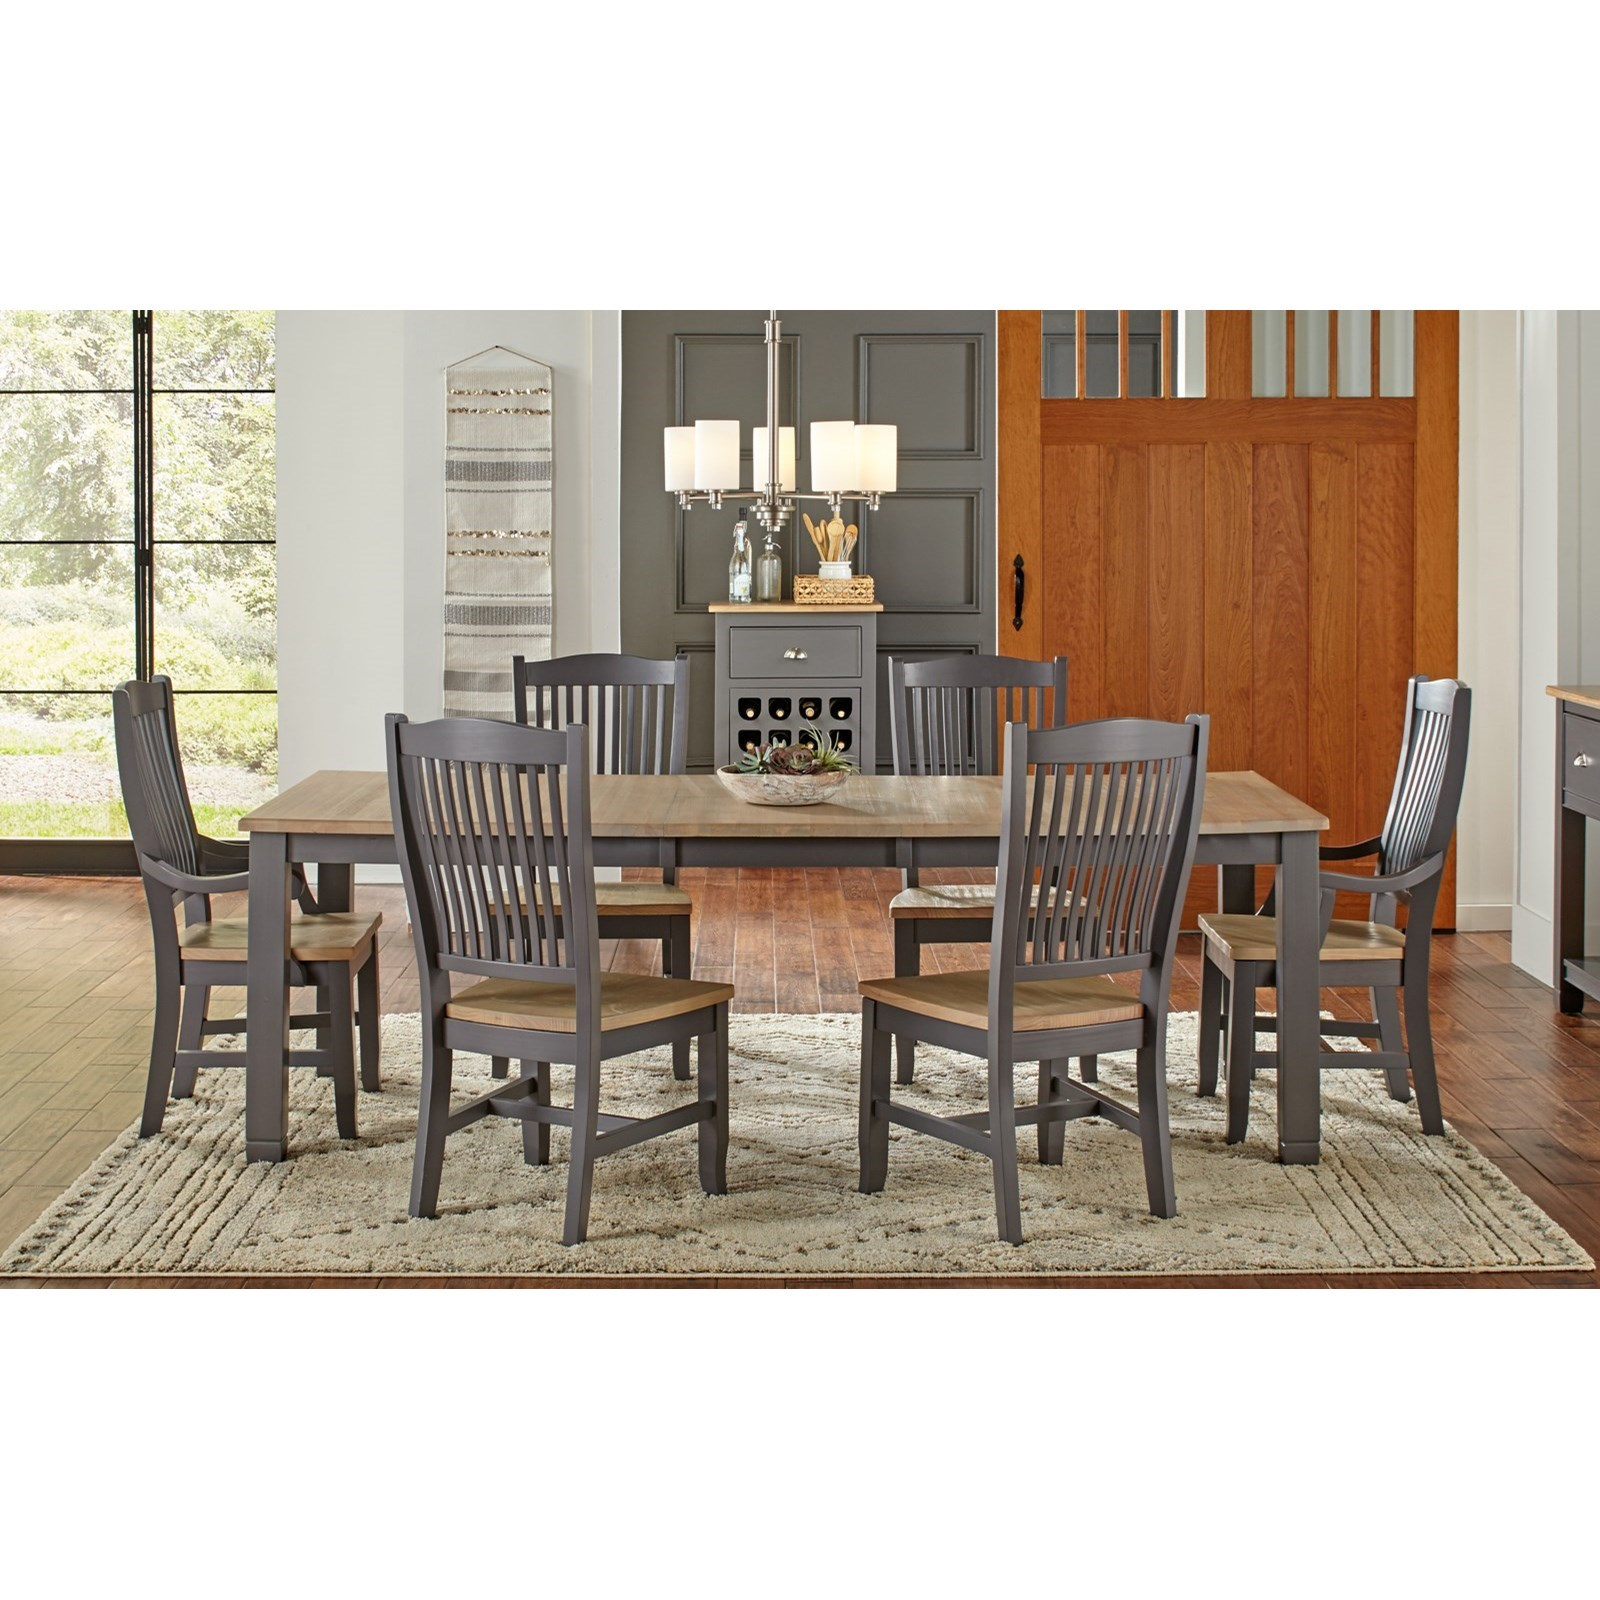 Port Townsend 7 Pc Table Set by AAmerica at Dinette Depot